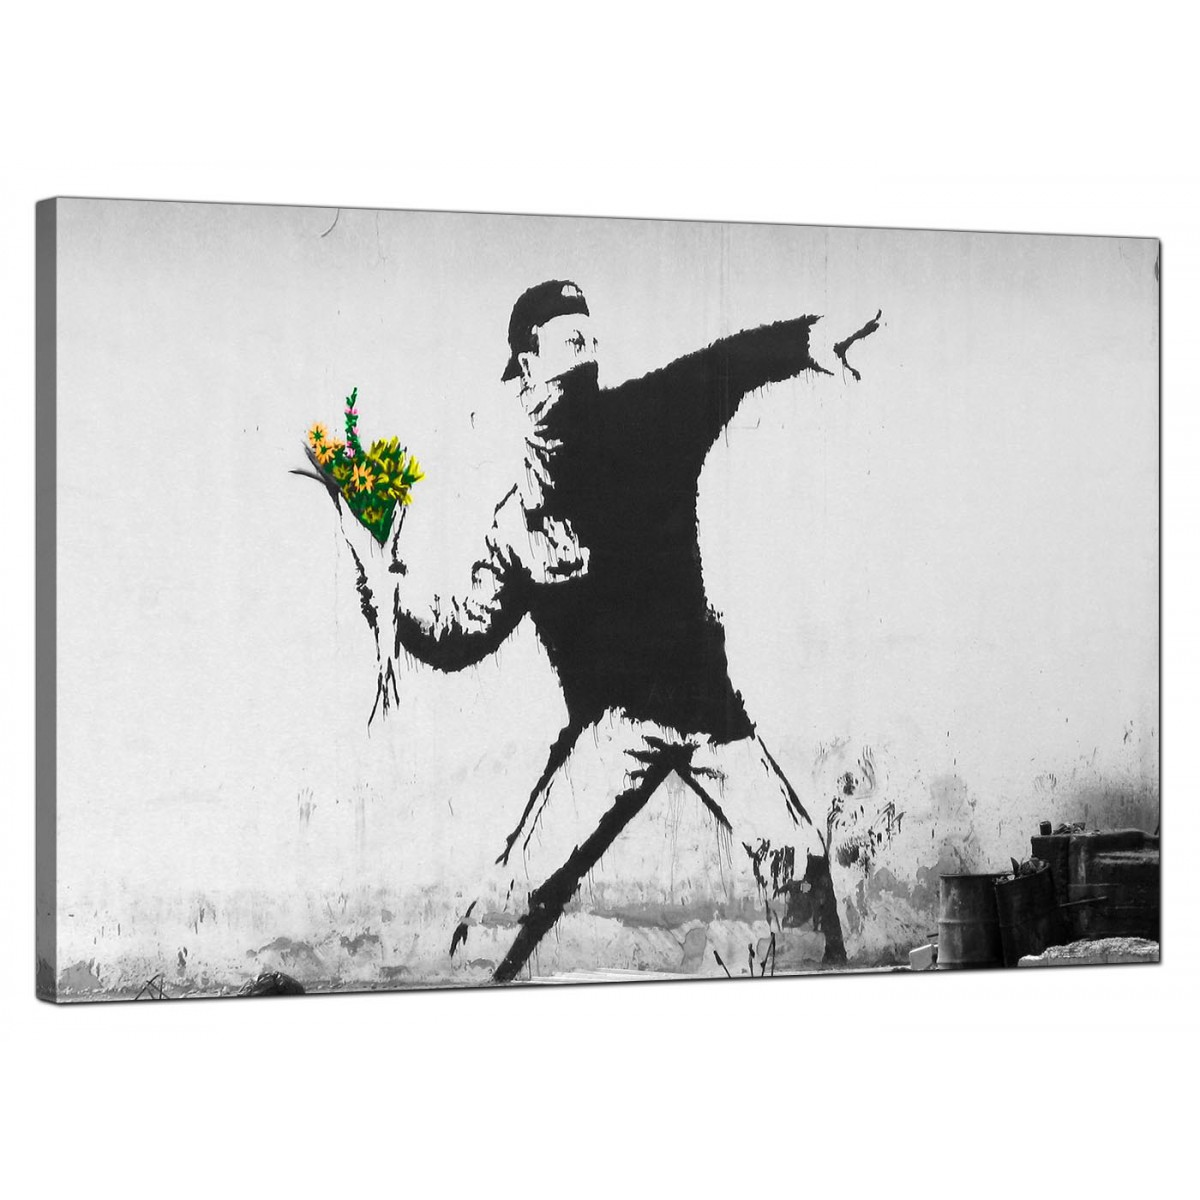 Banksy Canvas Pictures Rage Man Throwing Flowers Urban Art R L